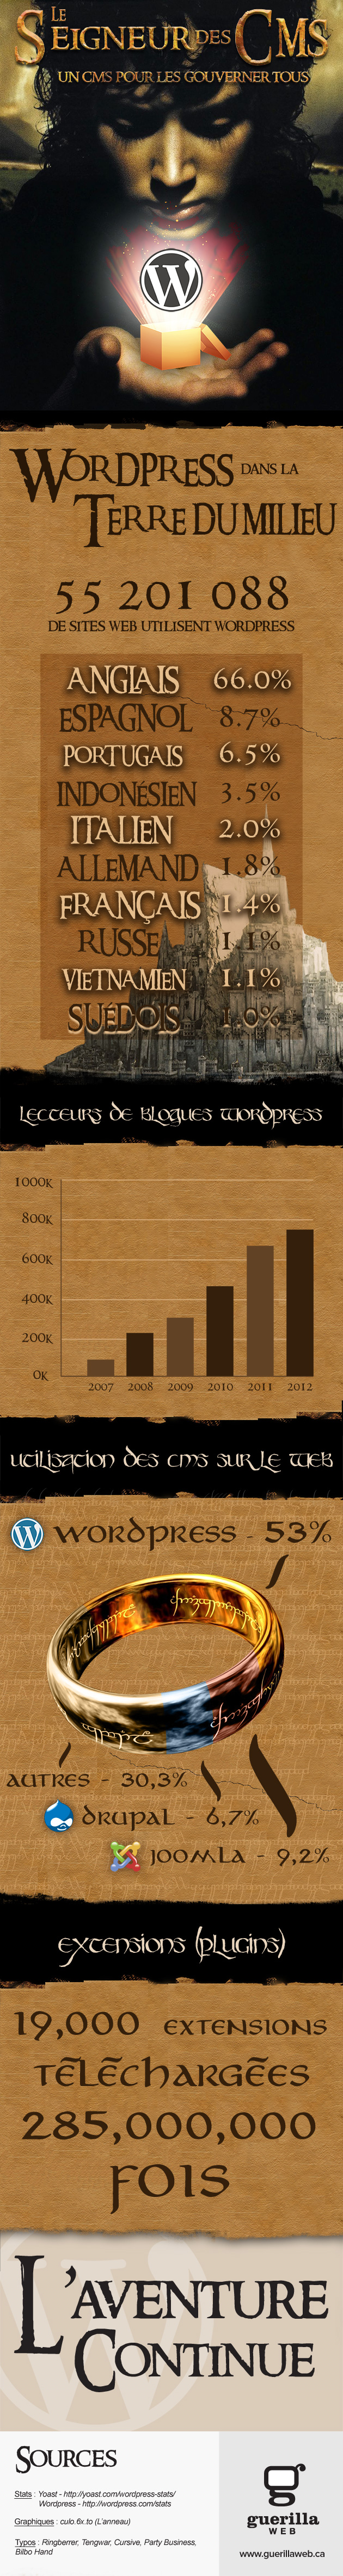 Infographie WordPress Statistiques